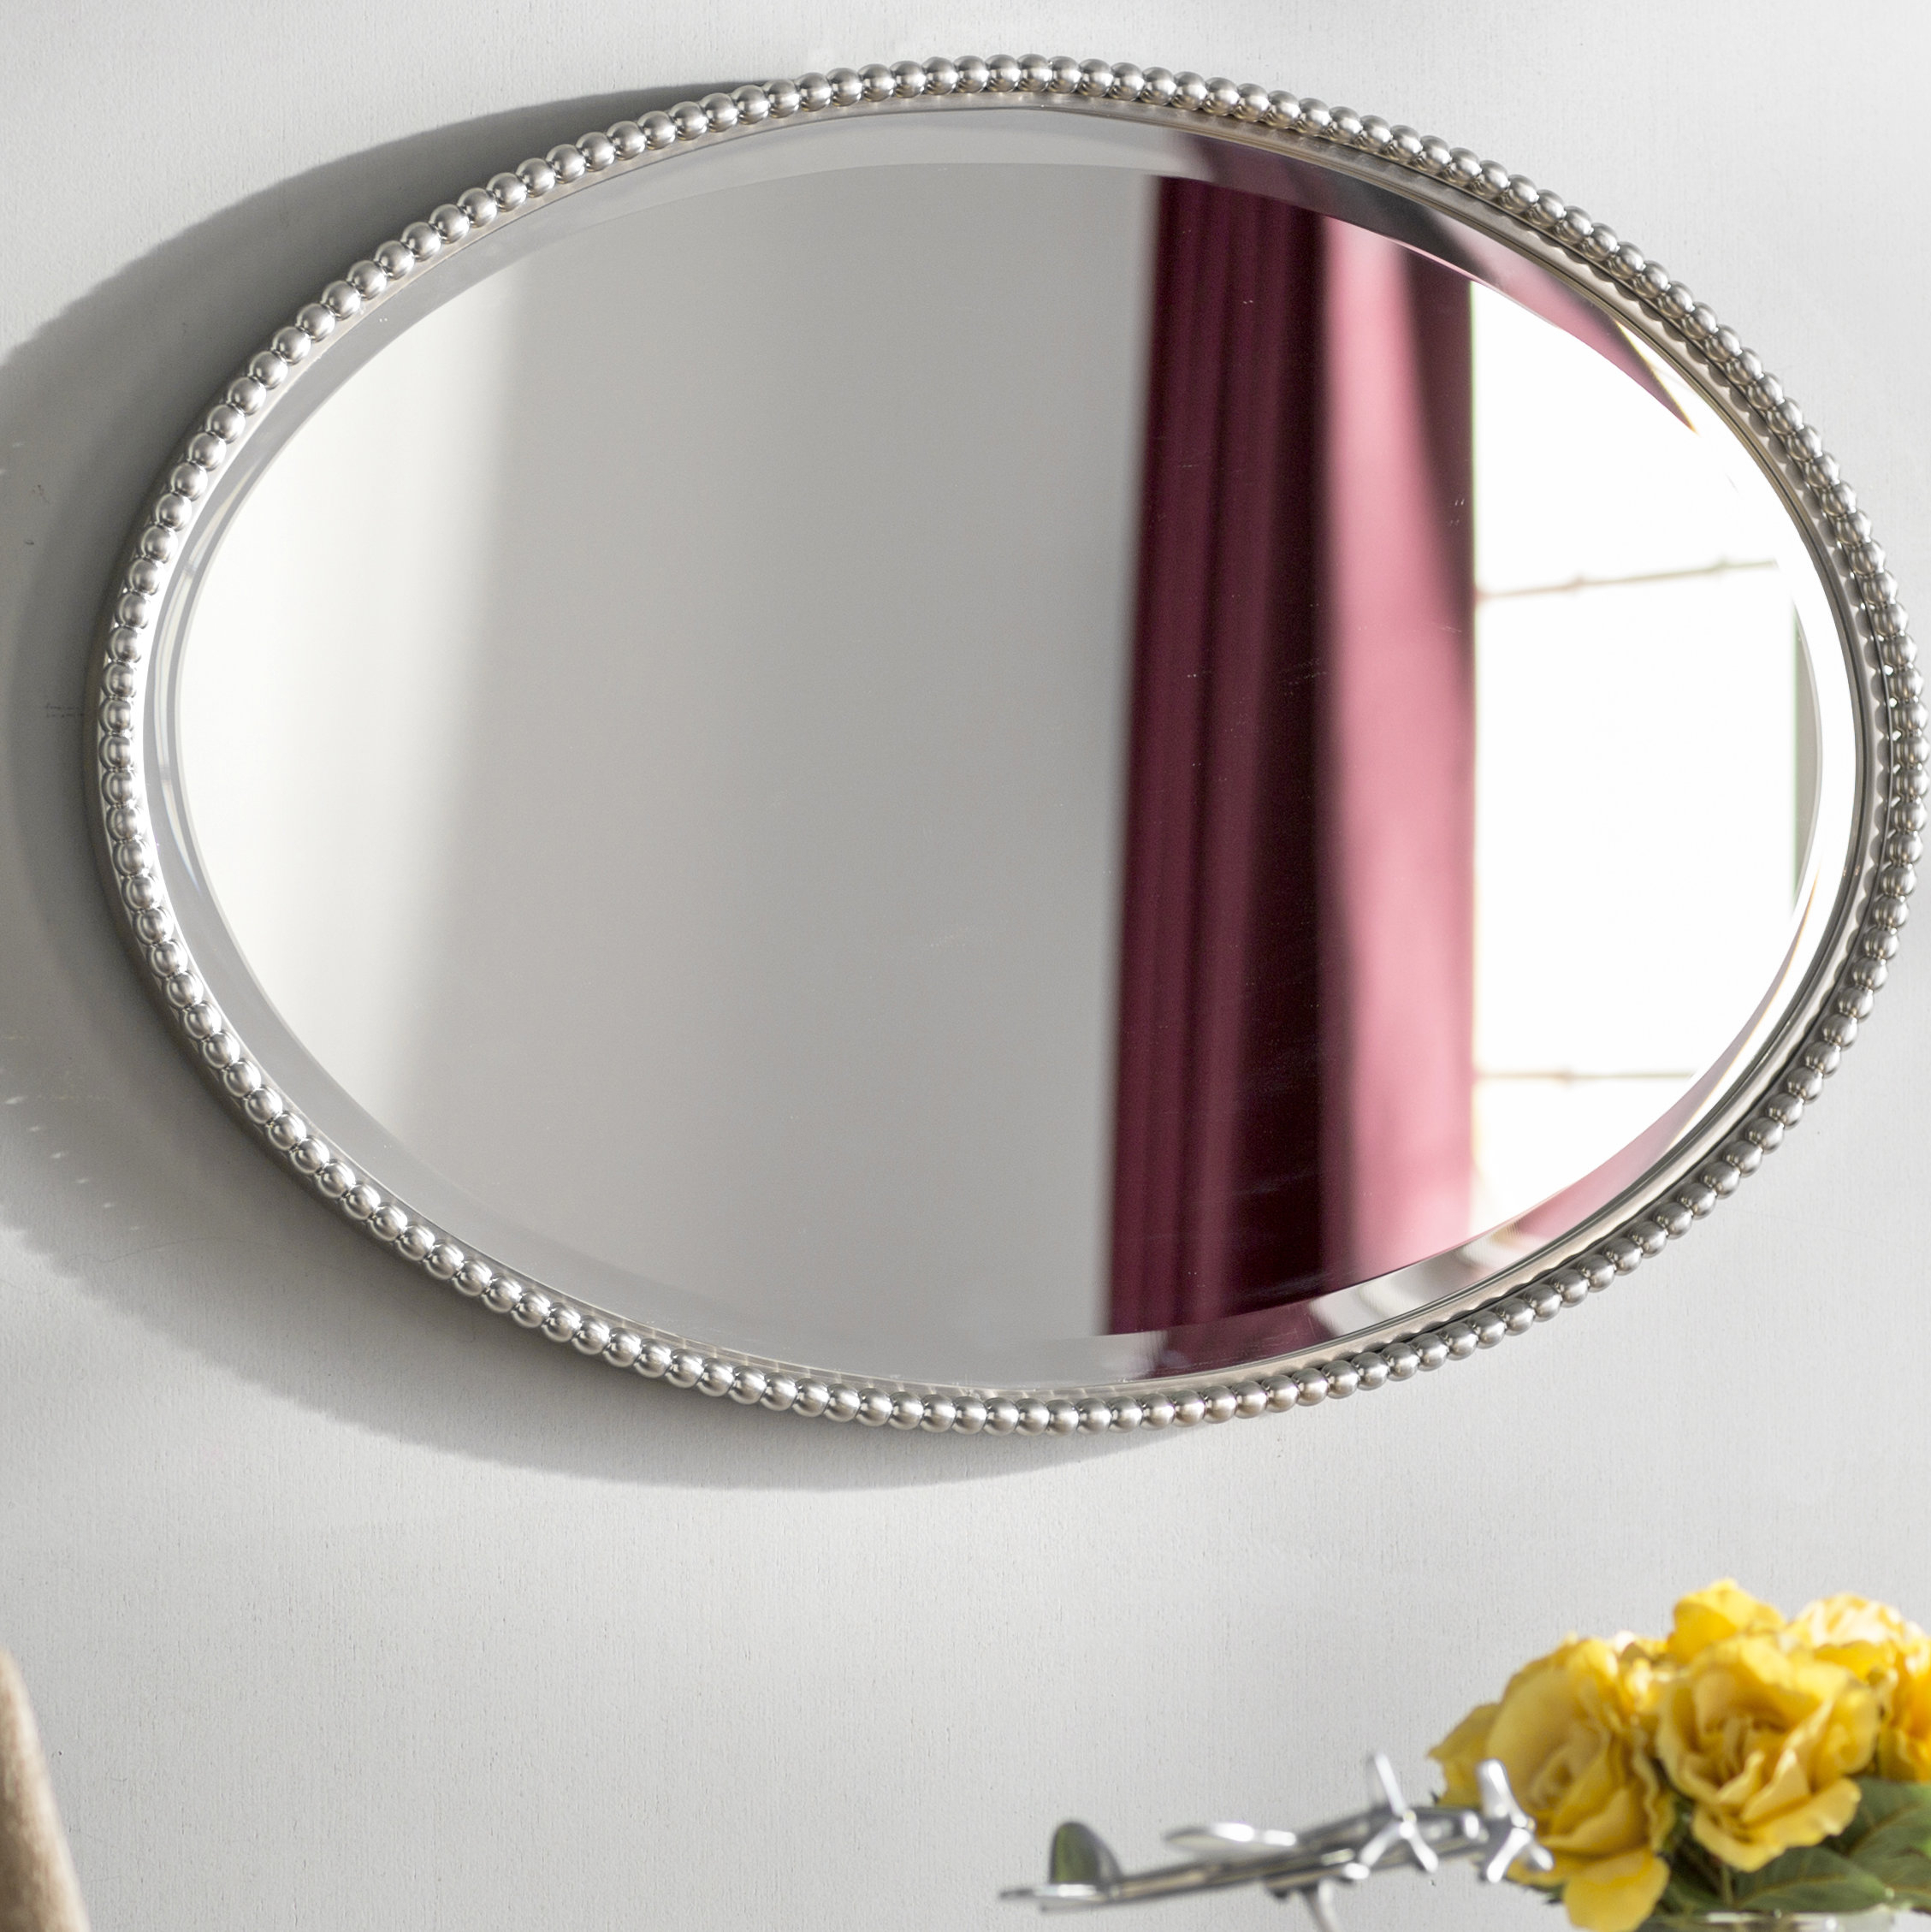 Glen View Beaded Oval Mirror Regarding Beaded Accent Wall Mirrors (View 13 of 30)